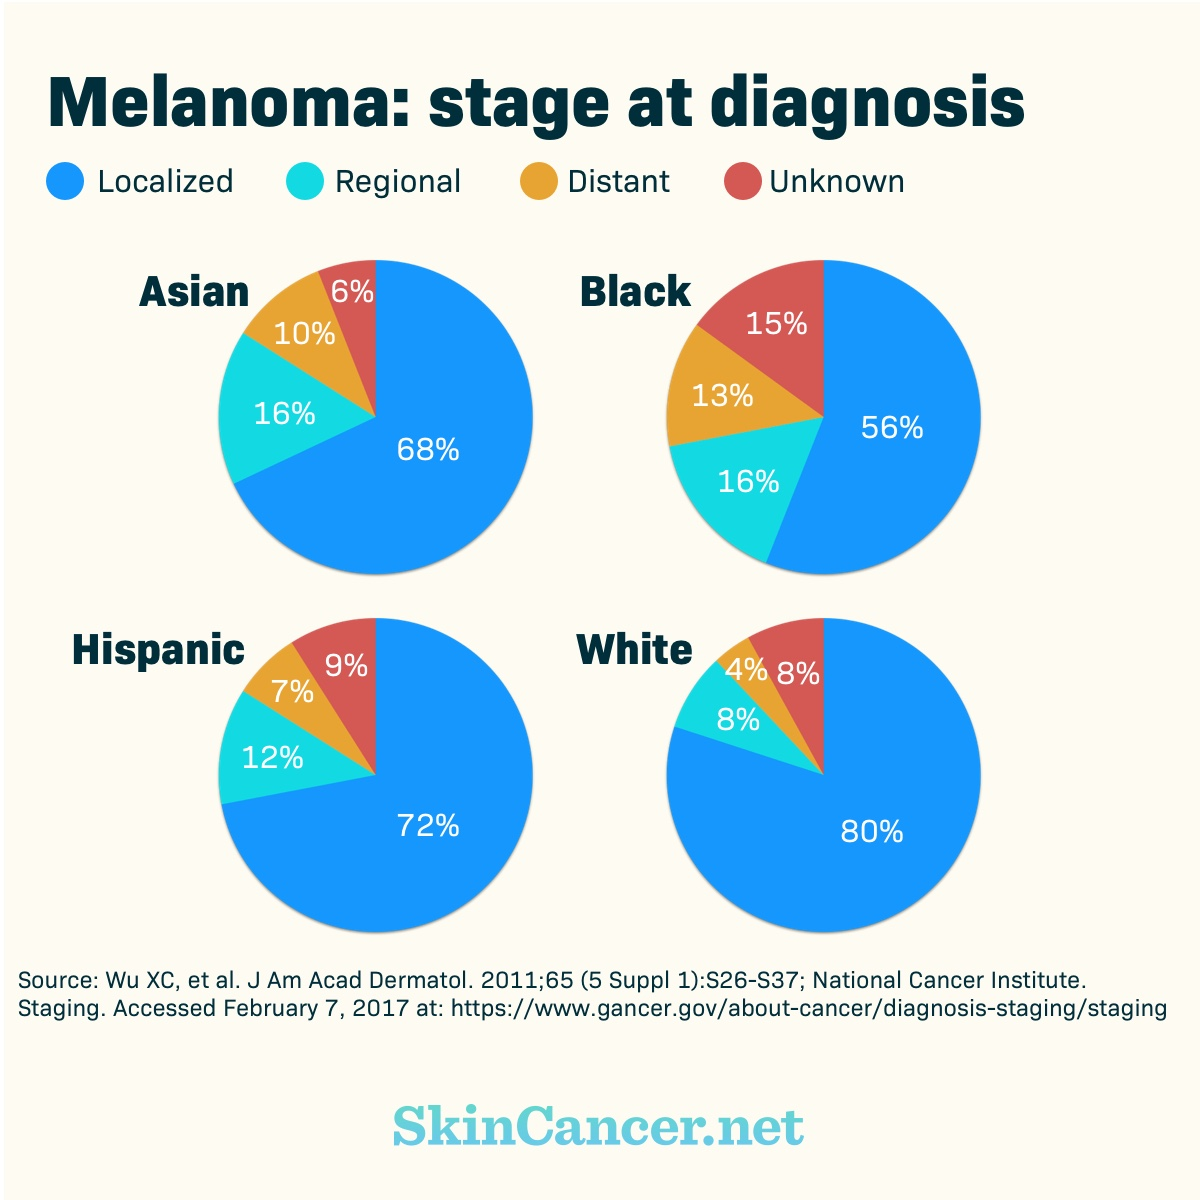 Pie charts showing stage at diagnosis, including localized diagnosis for those identifying as Black (56%), White (80%), Asian (68%), and Hispanic (72%)